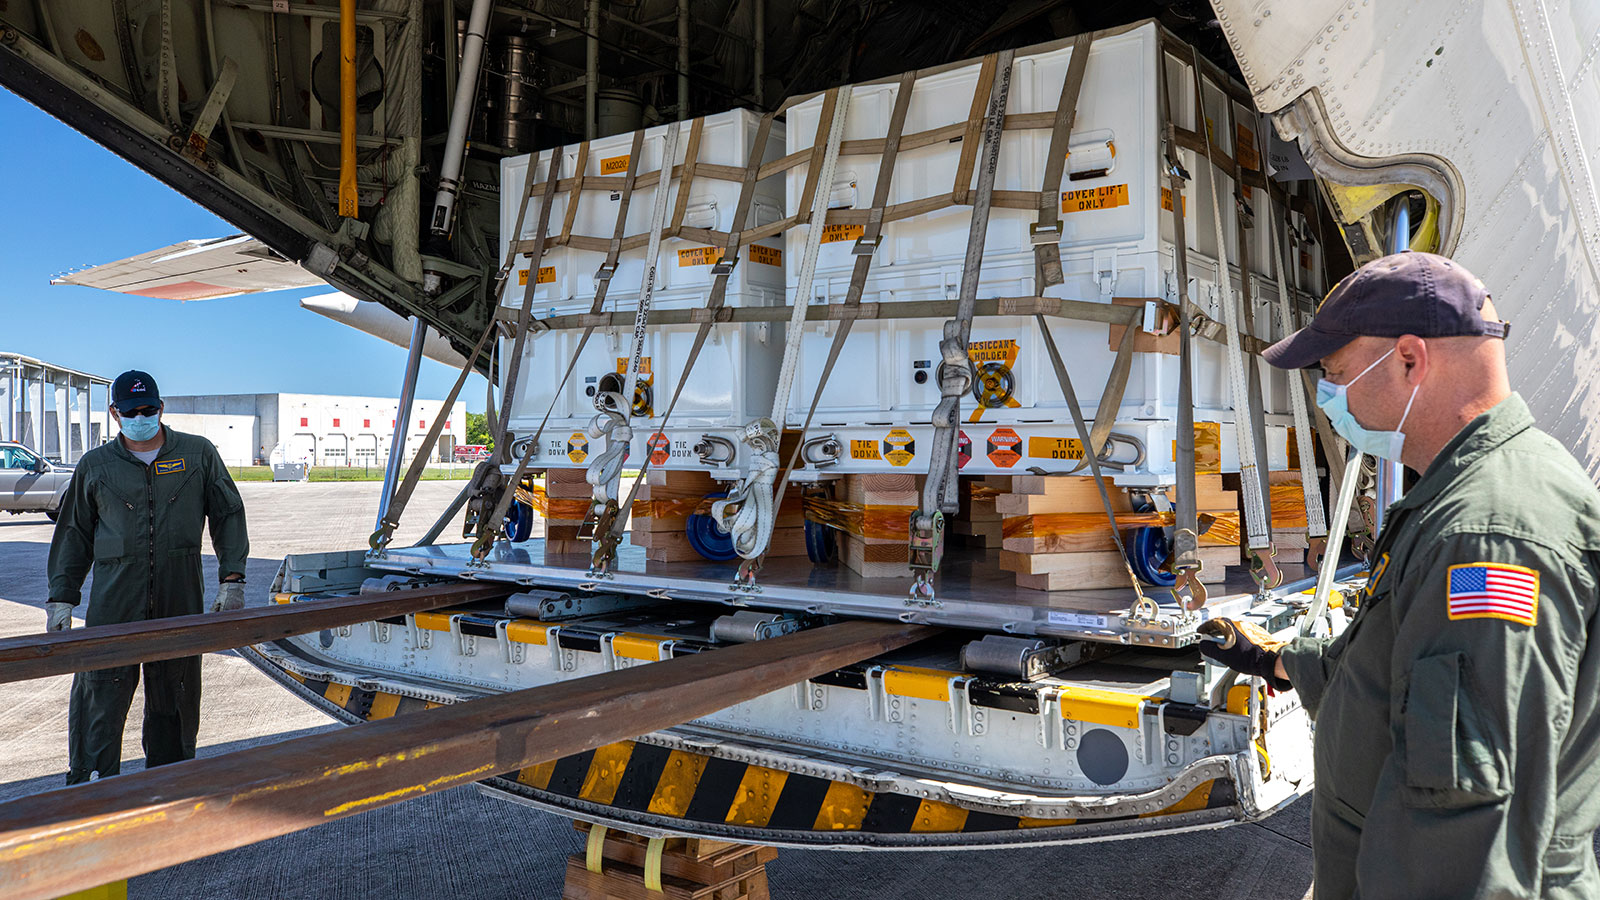 Perseverance mission flight hardware and equipment delivered to KSC is unloaded from a NASA Wallops C-130